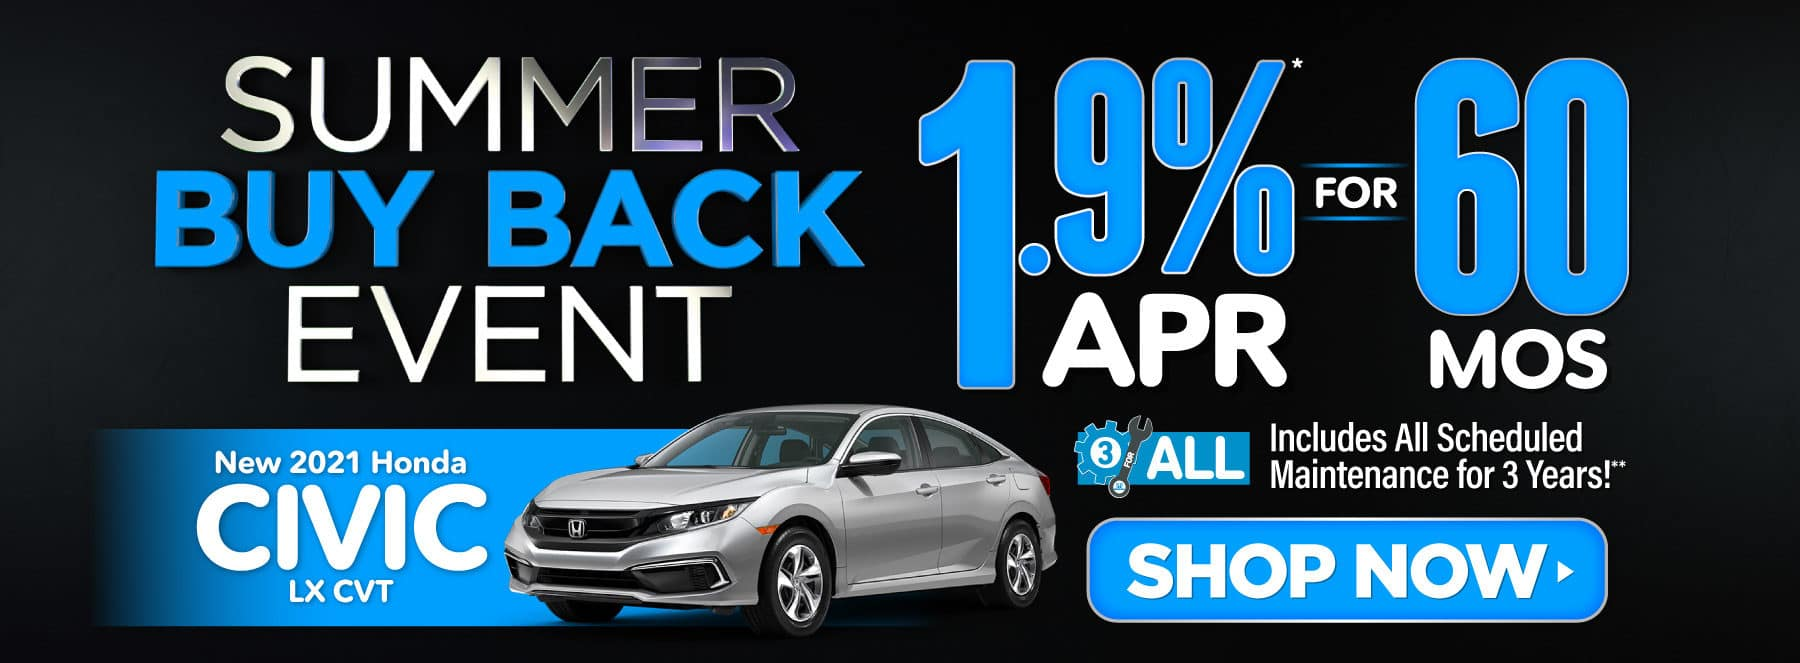 New 2021 Honda Civic - 1.9% APR for 60 months - Shop Now